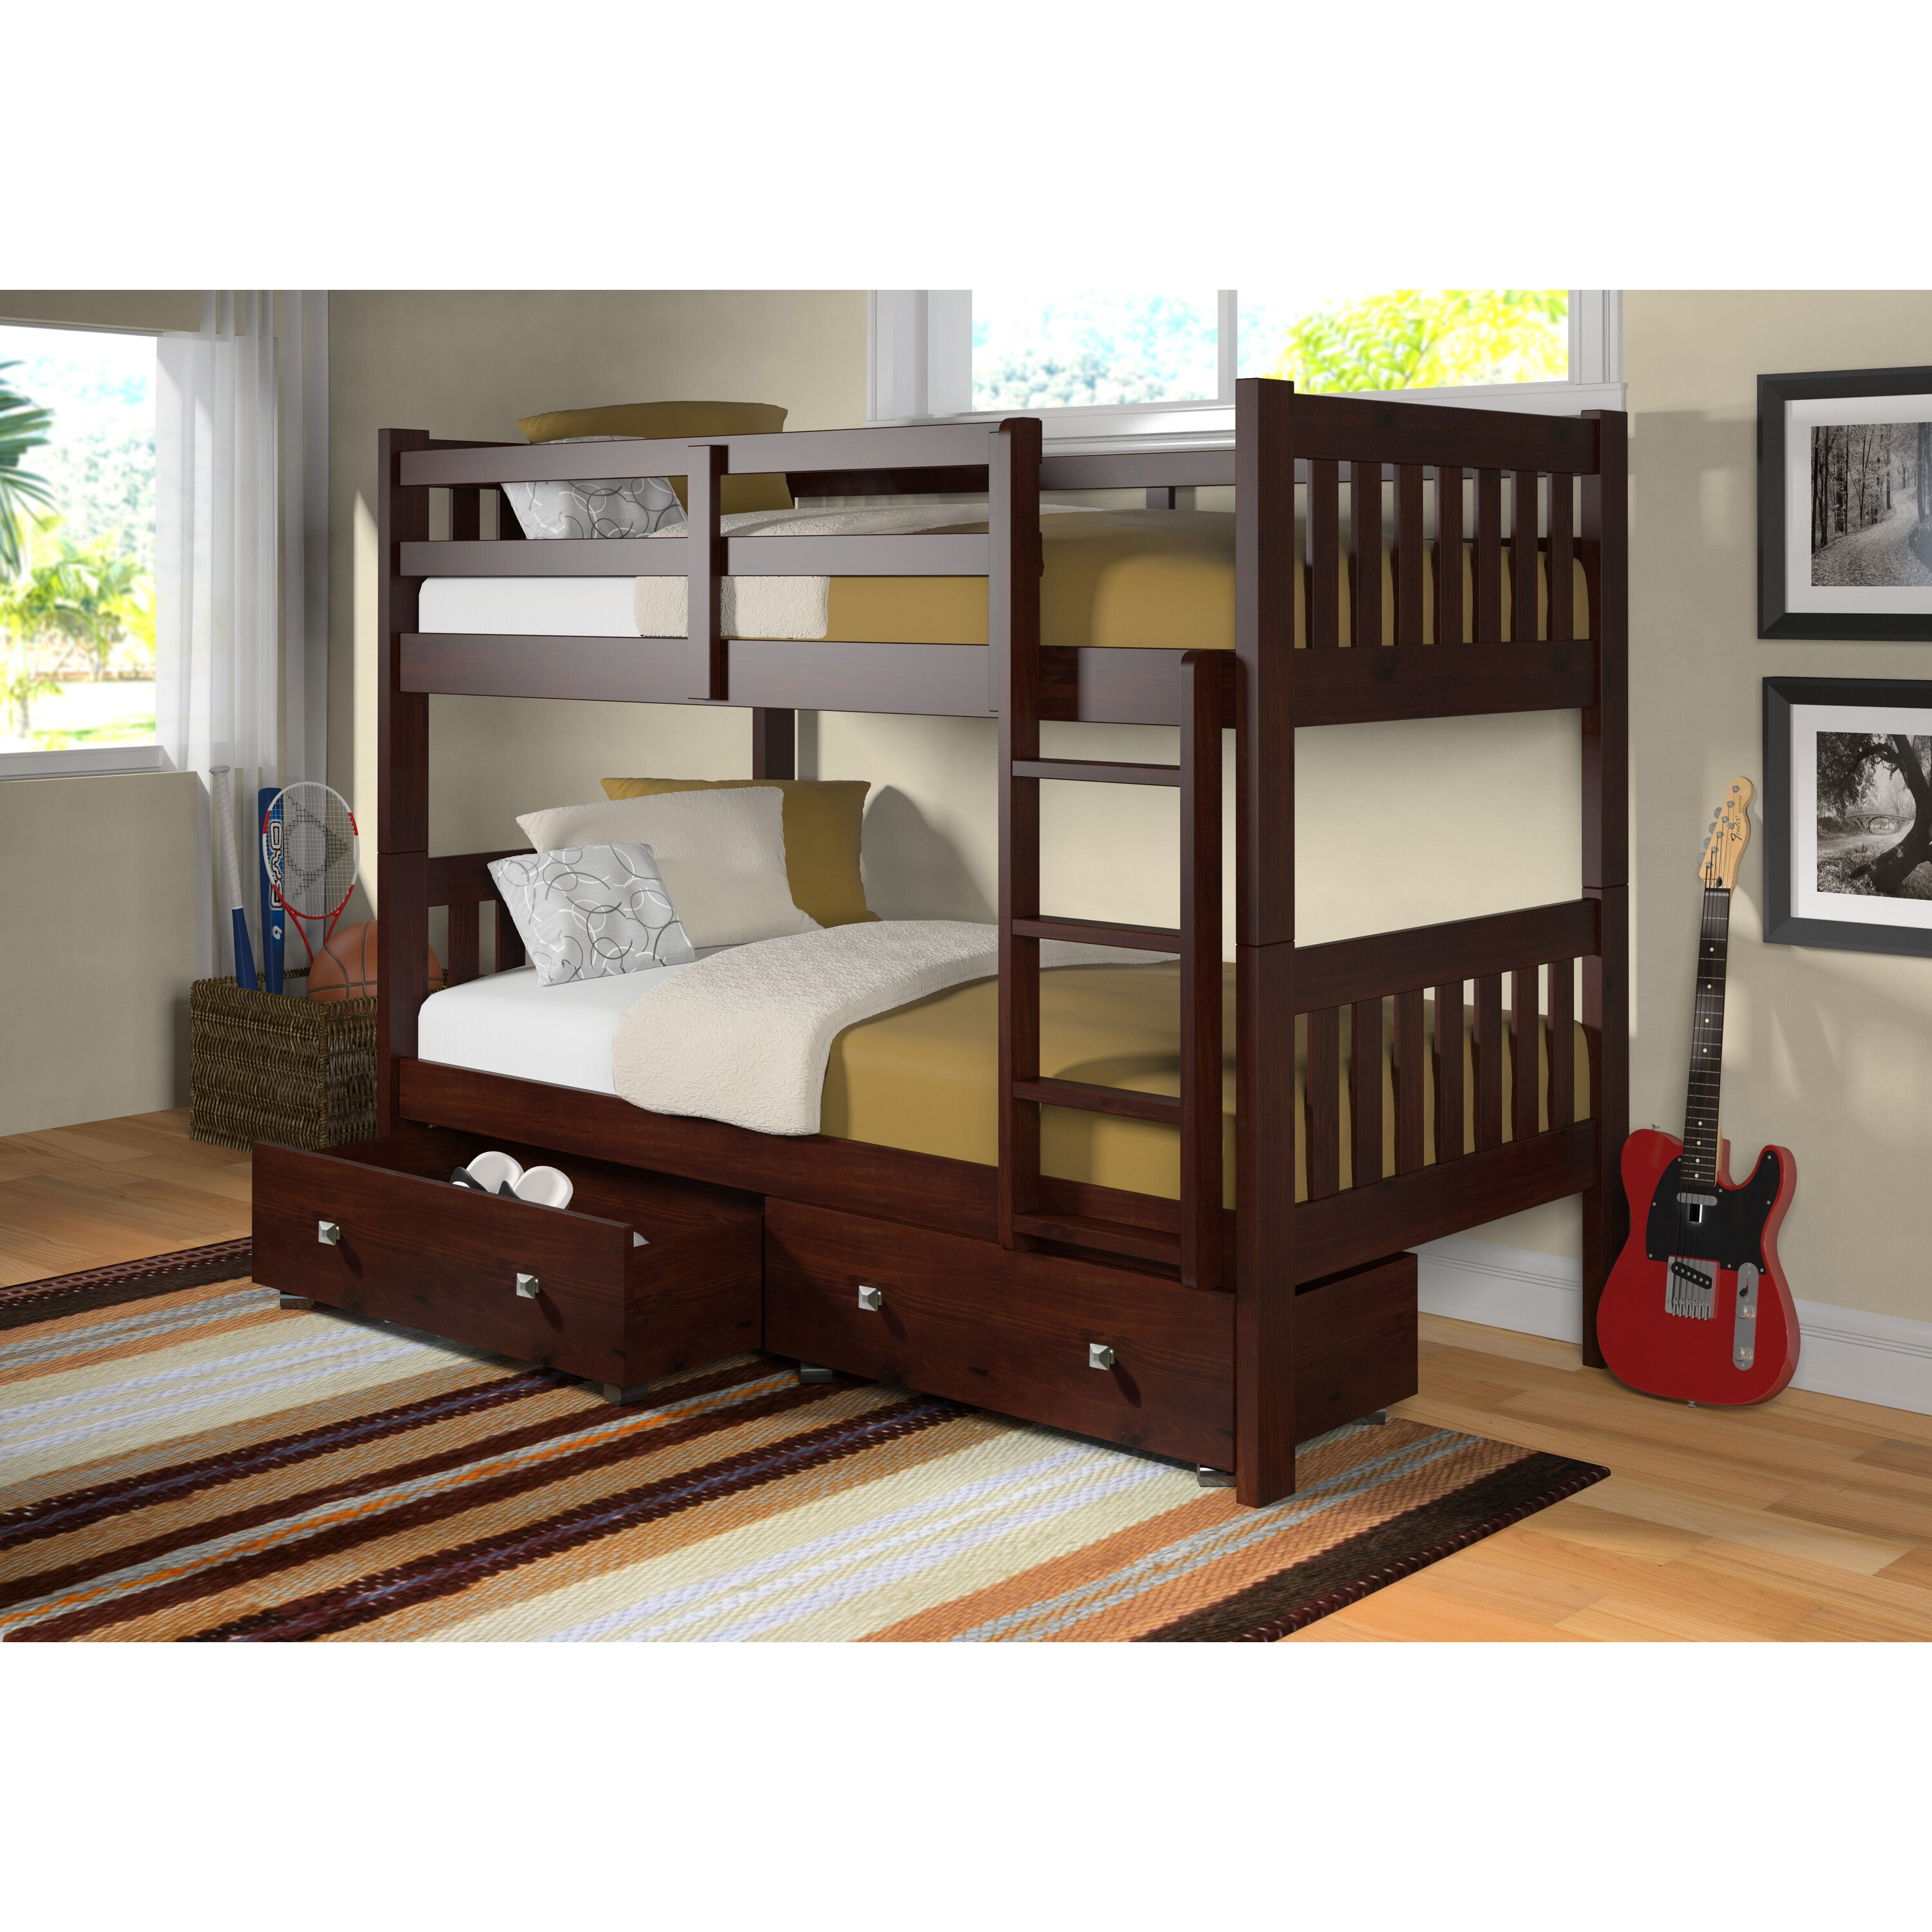 Twin Bunk Bed With Storage Wayfair